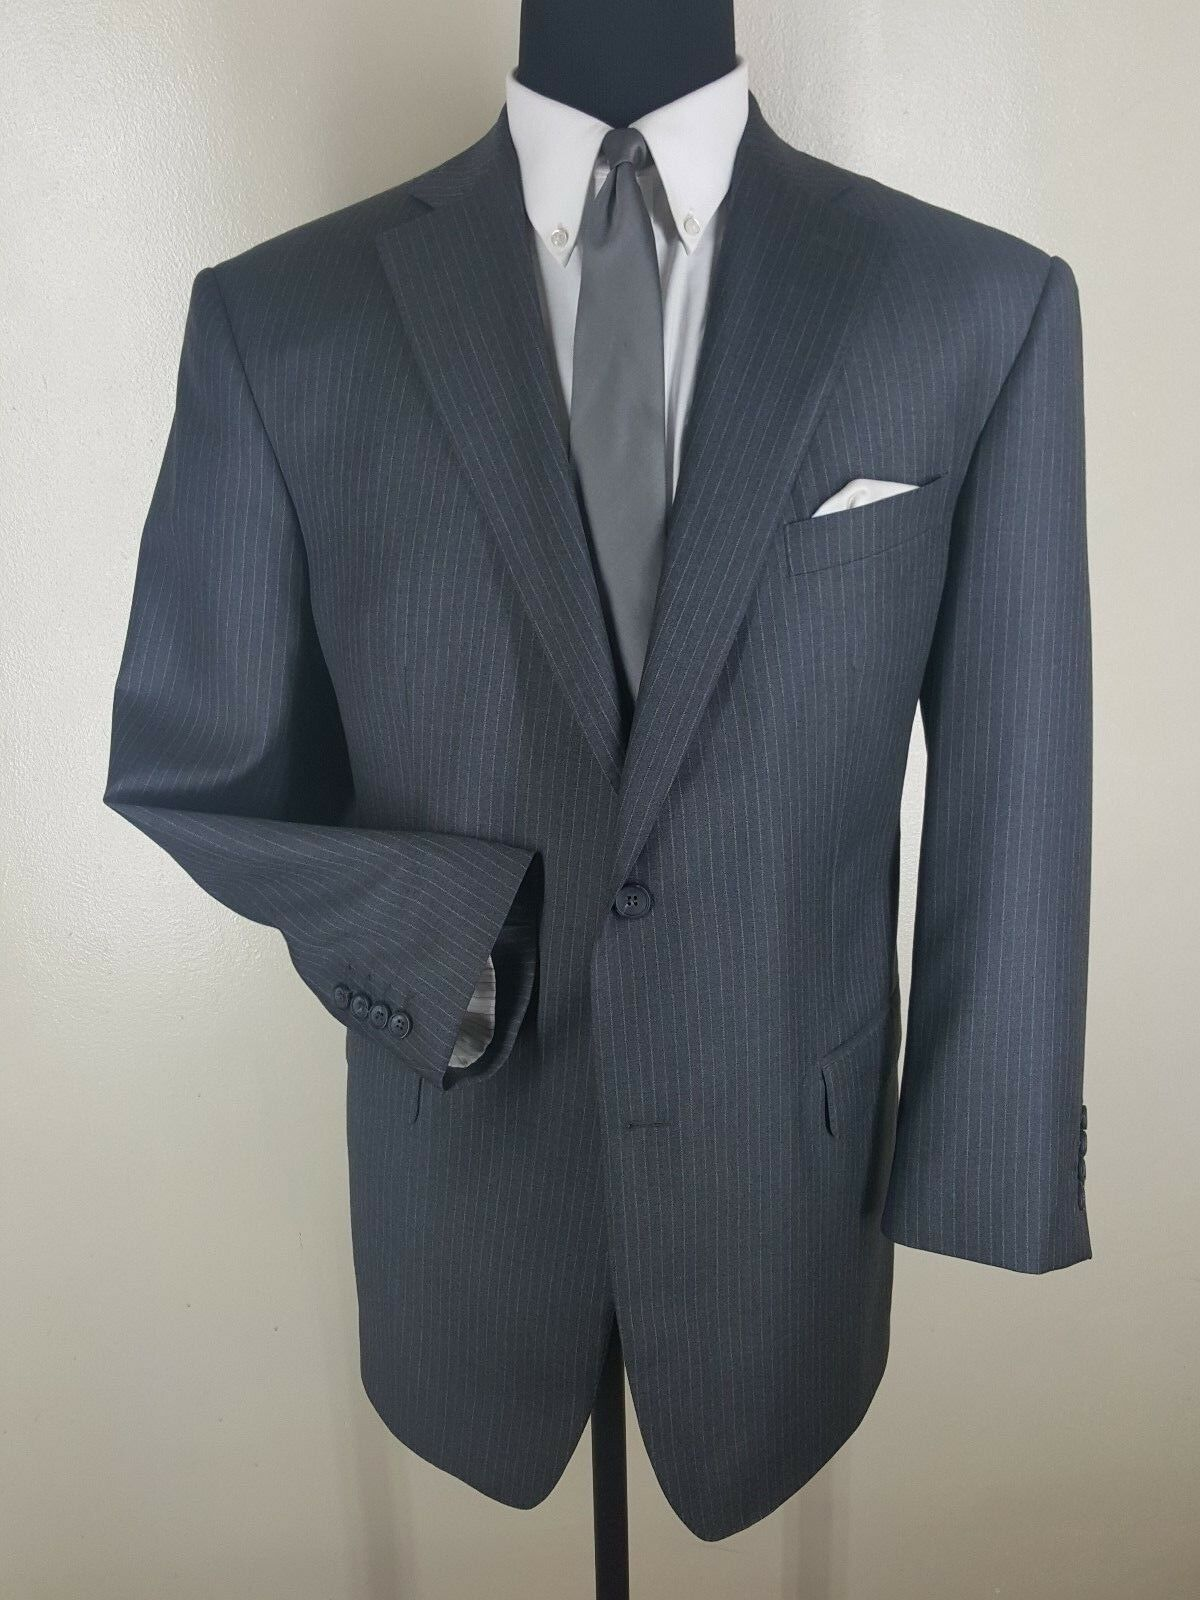 THOMAS MITCHELL Clothiers Recent Bespoke 100% Wool Suit 2 Btn 1 Vent Fit 44-46 R